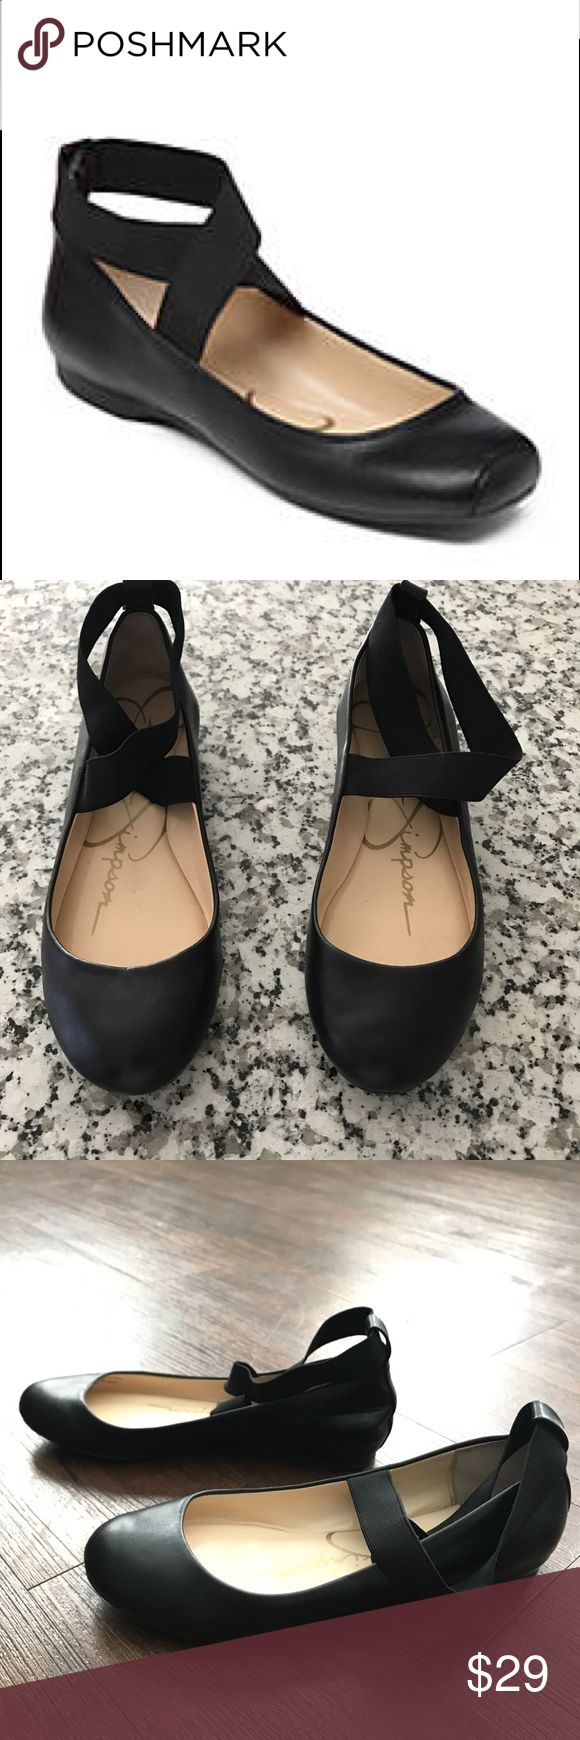 Jessica Simpson Black Leather Ballet Flats size 8 Worn once for photo shoot. Great condition    These ballerina-inspired flats are perfect for everyday wear. The lightly cushioned footbed offers a comfortable feel while the crisscross straps give them a touch of trend-right appeal. 0.3-in. heel Slip-on Lightly cushioned footbed Leather Imported Jessica Simpson Shoes Flats & Loafers